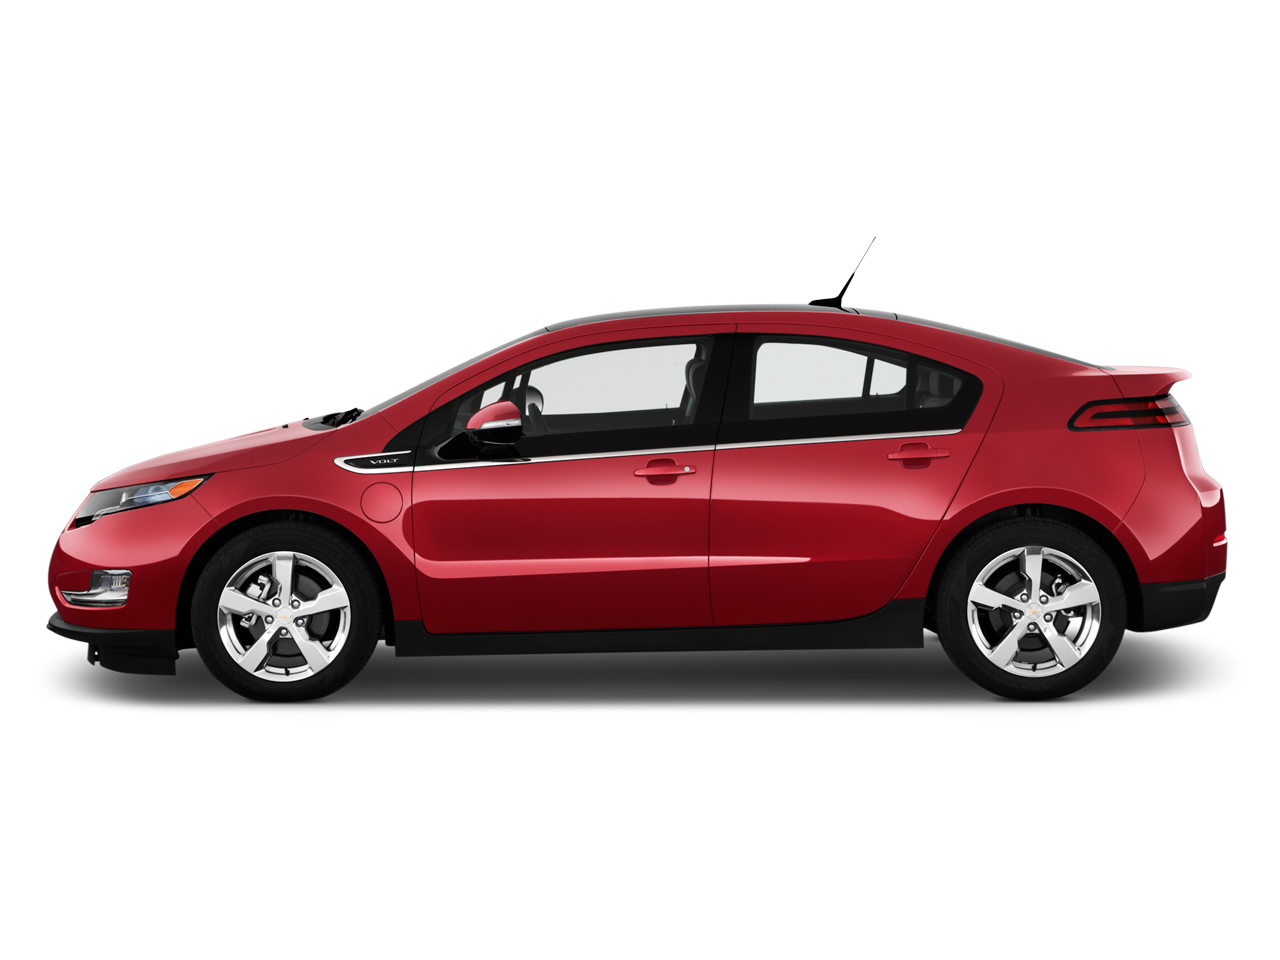 2013 chevrolet volt (chevy) review, ratings, specs, prices, and2013 chevrolet volt review